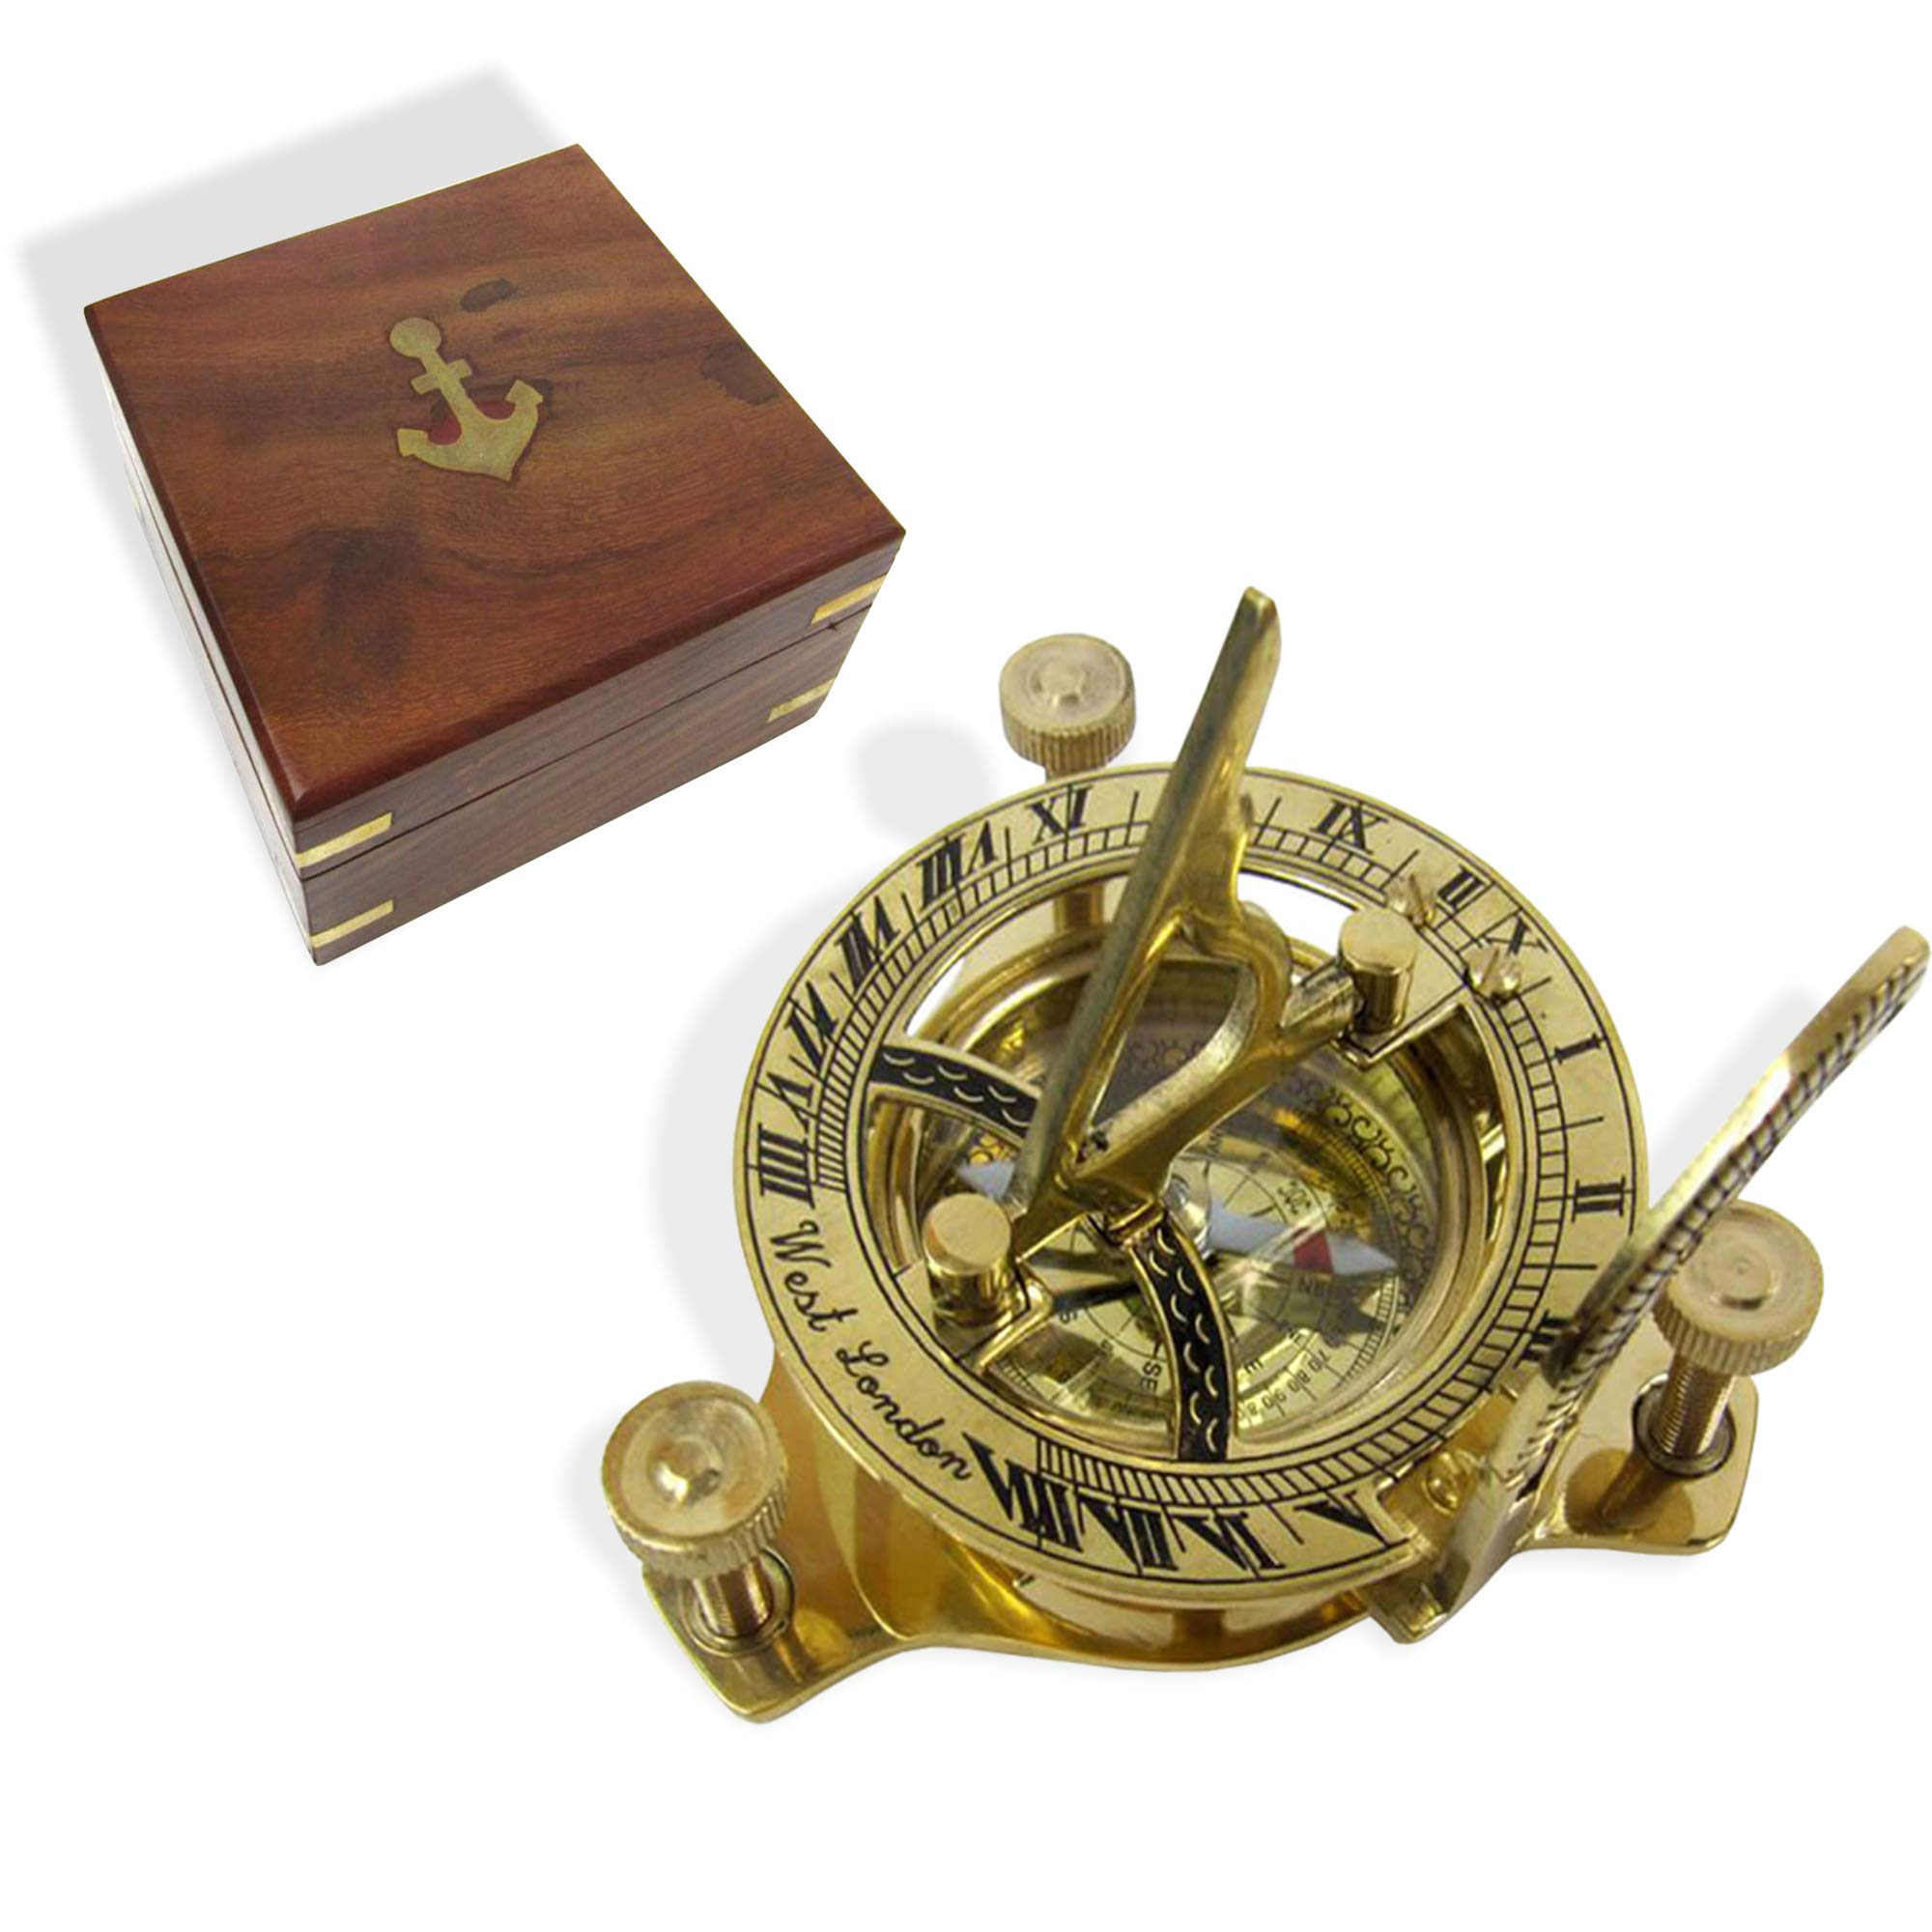 RedSkyTrader Sundial Compass Solid Brass Sun Dial (with Wooden Box)